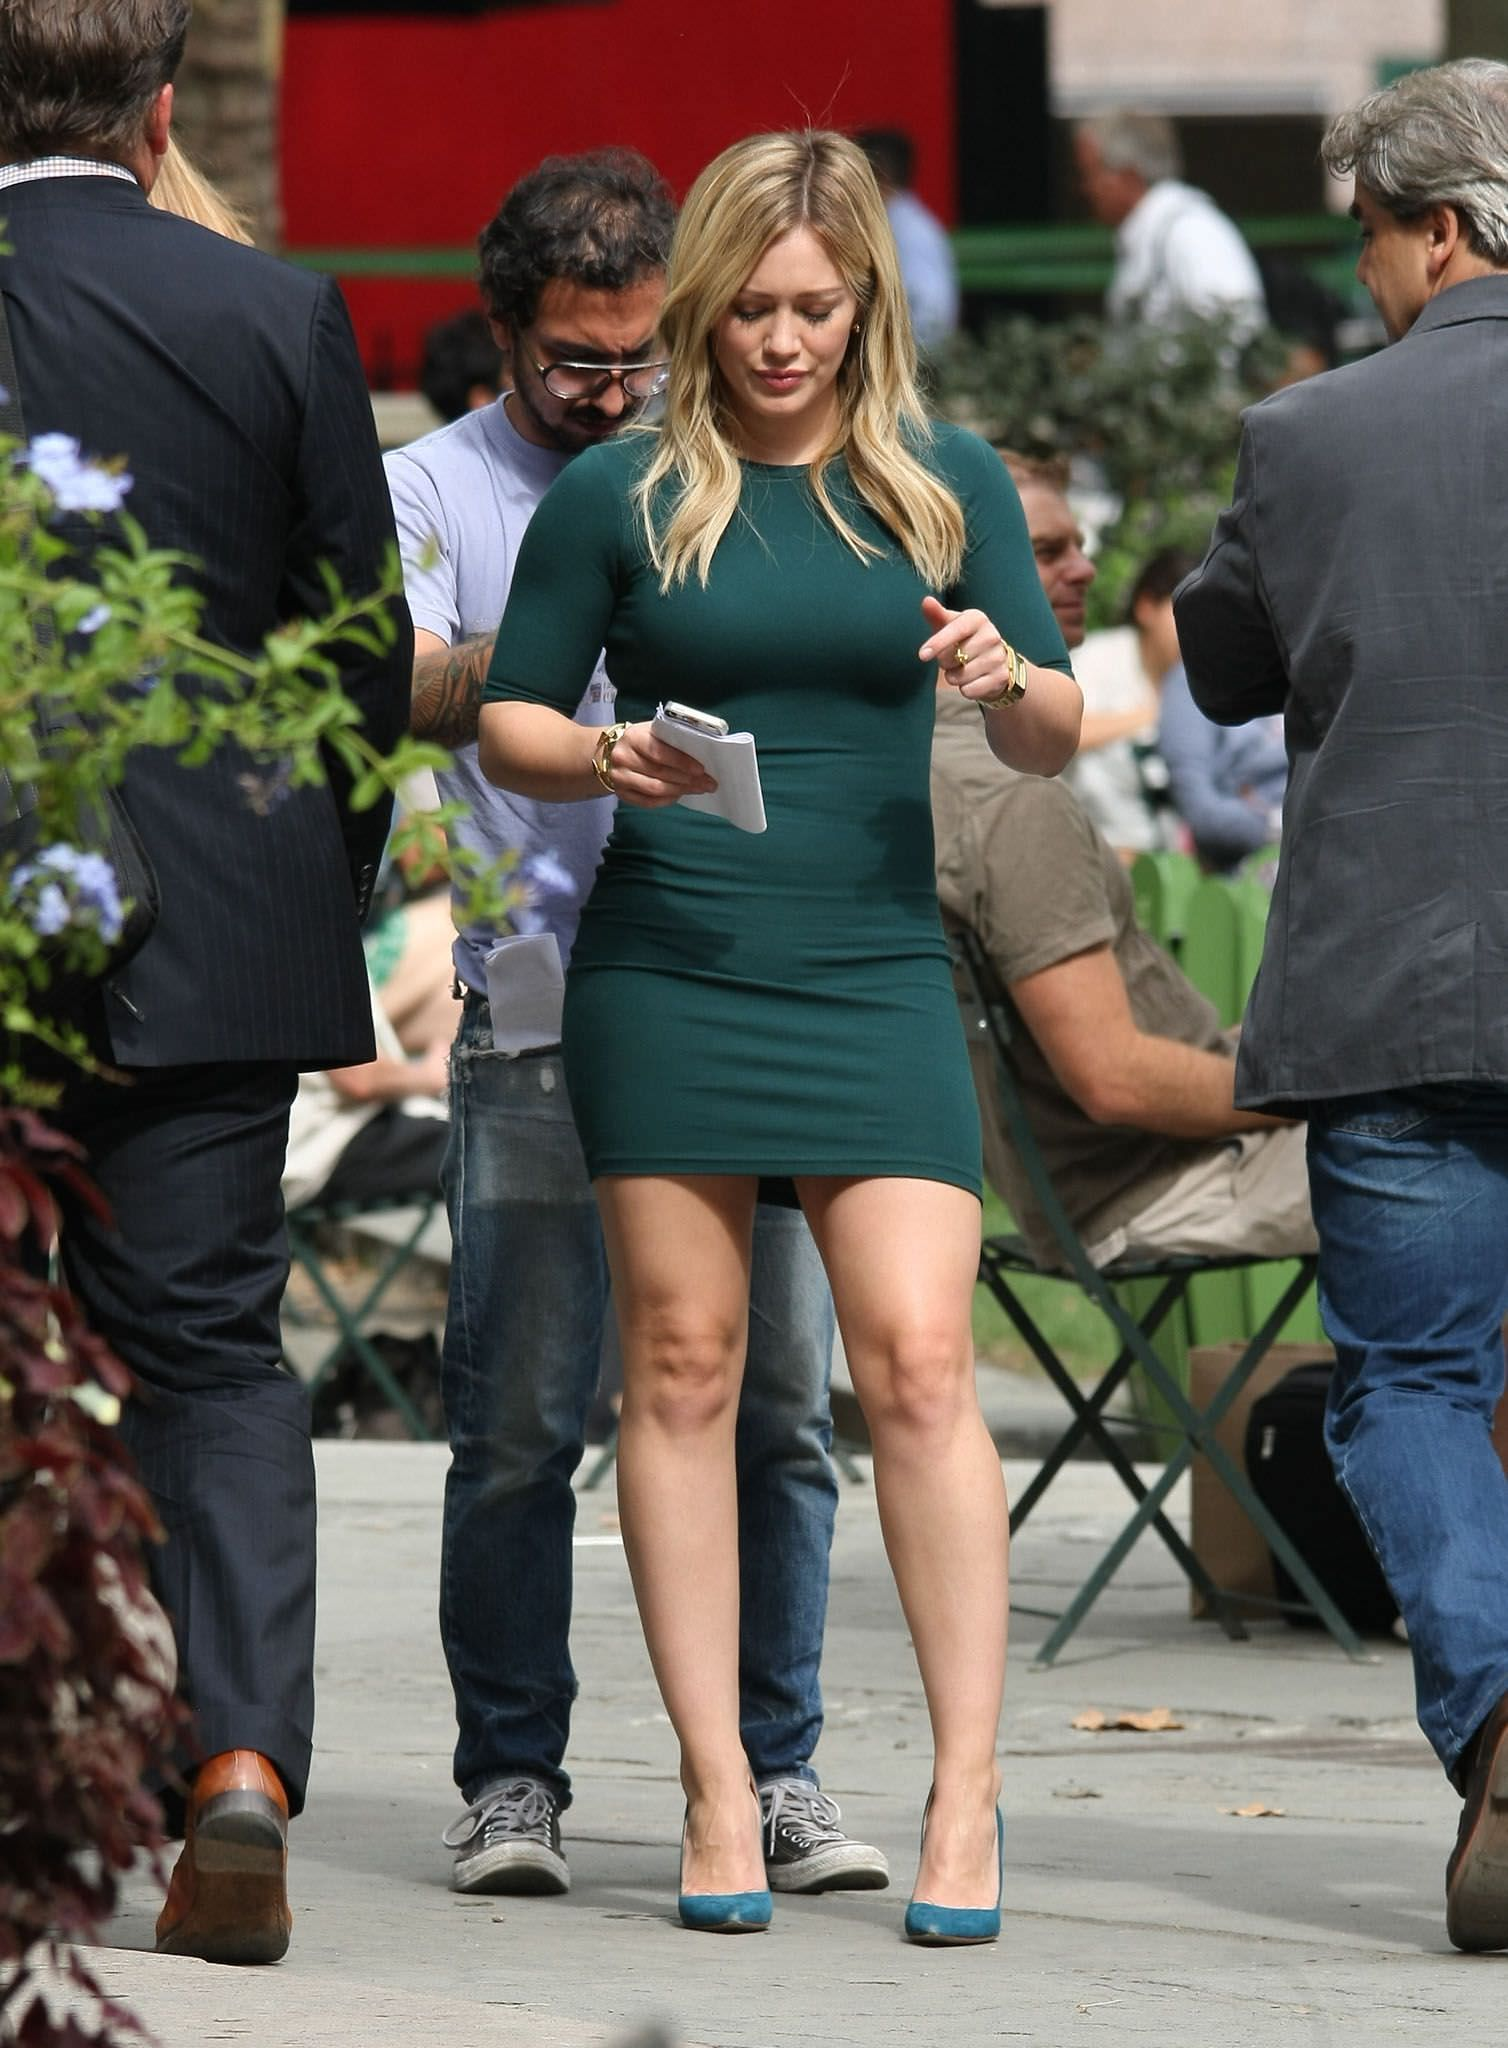 Hilary duff hilary duffus legs pinterest hilary duff legs and